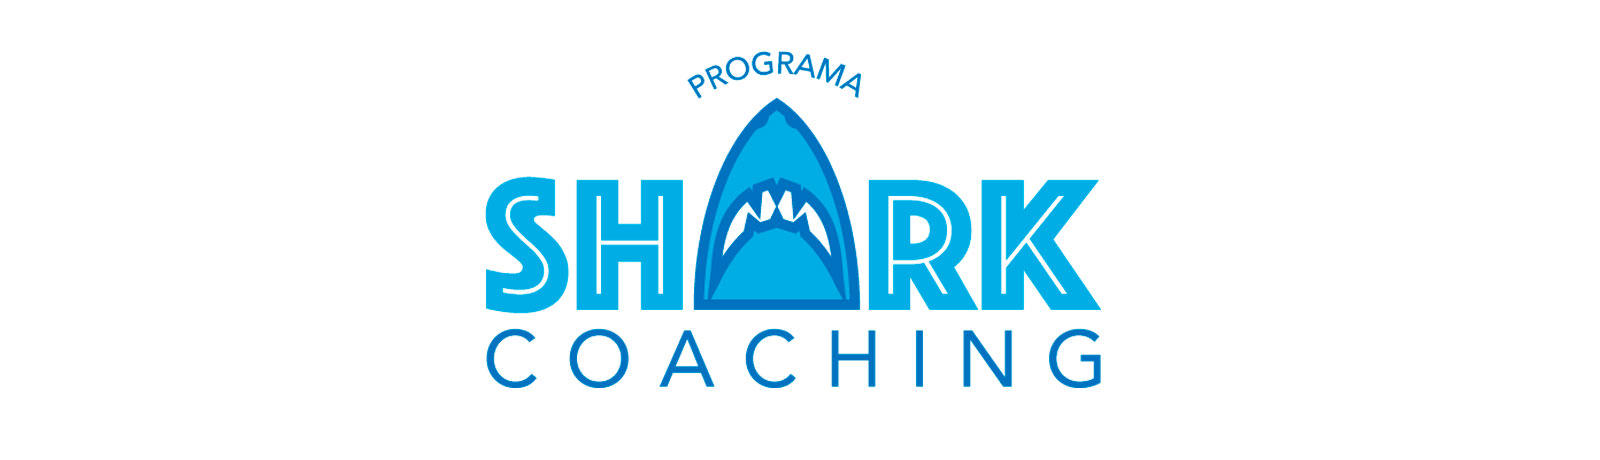 Shark Coaching Logo